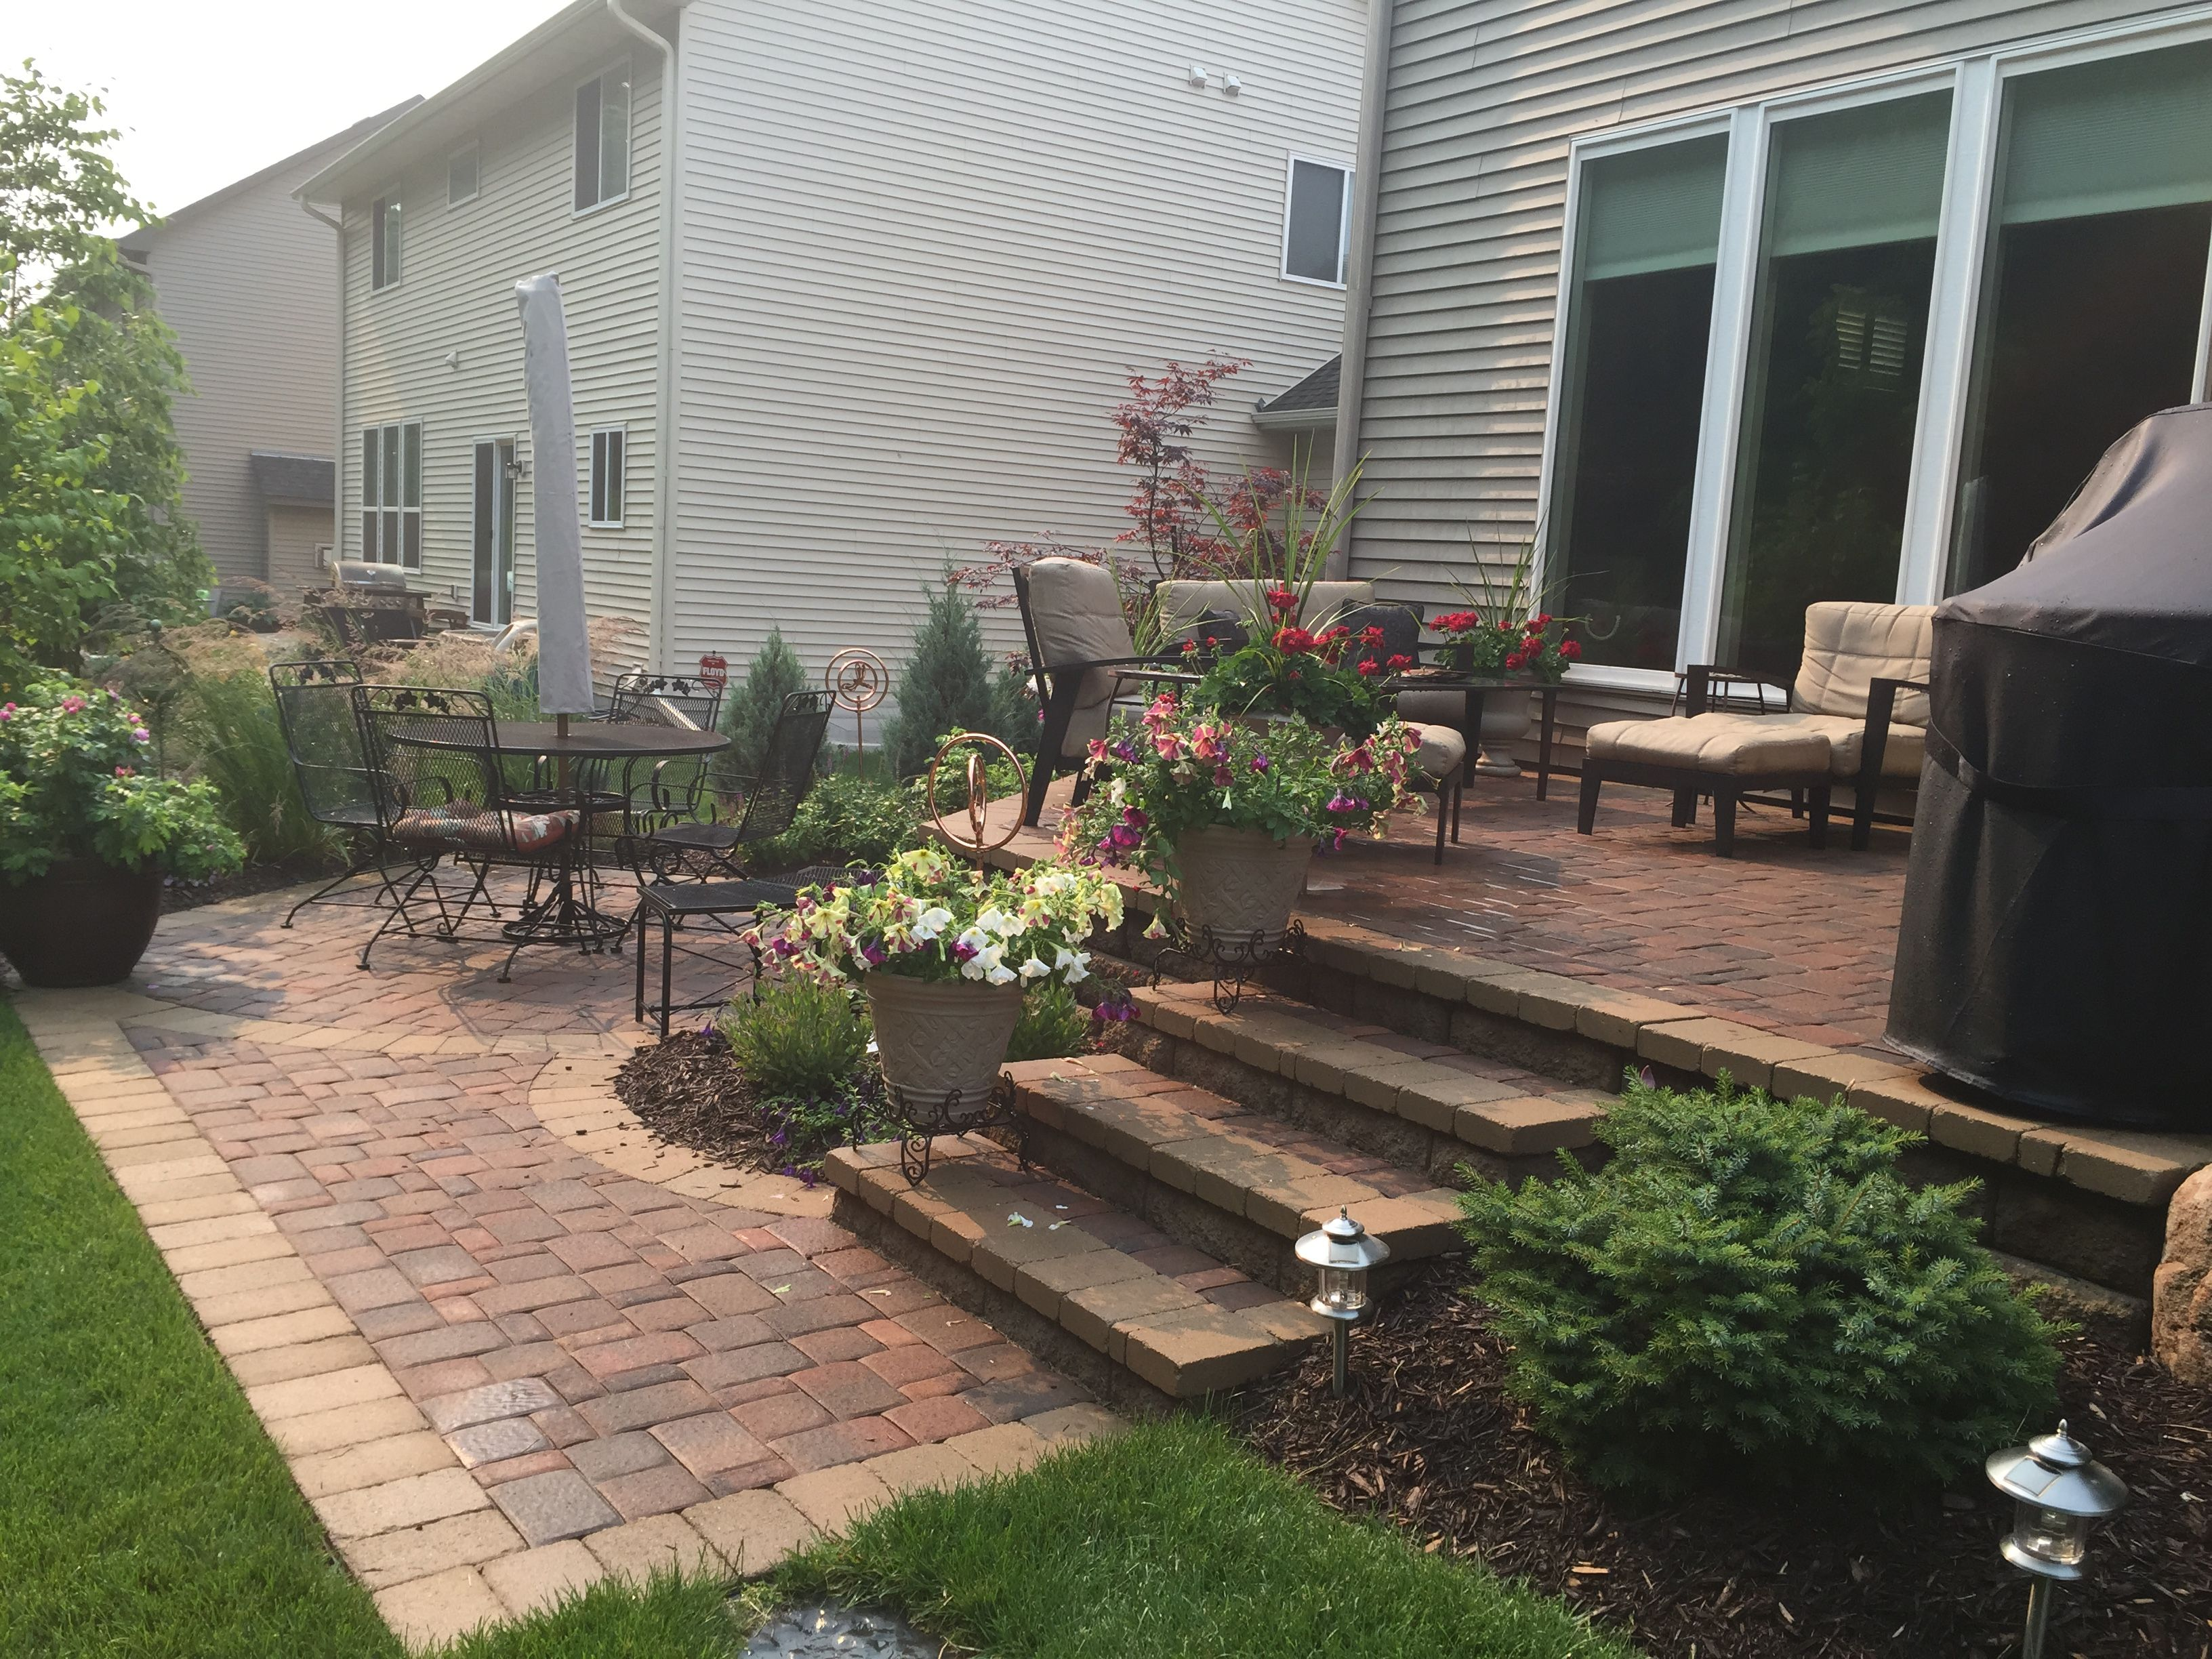 Raised patio ideas - Raised patio with steps down to a second patio space two level patio